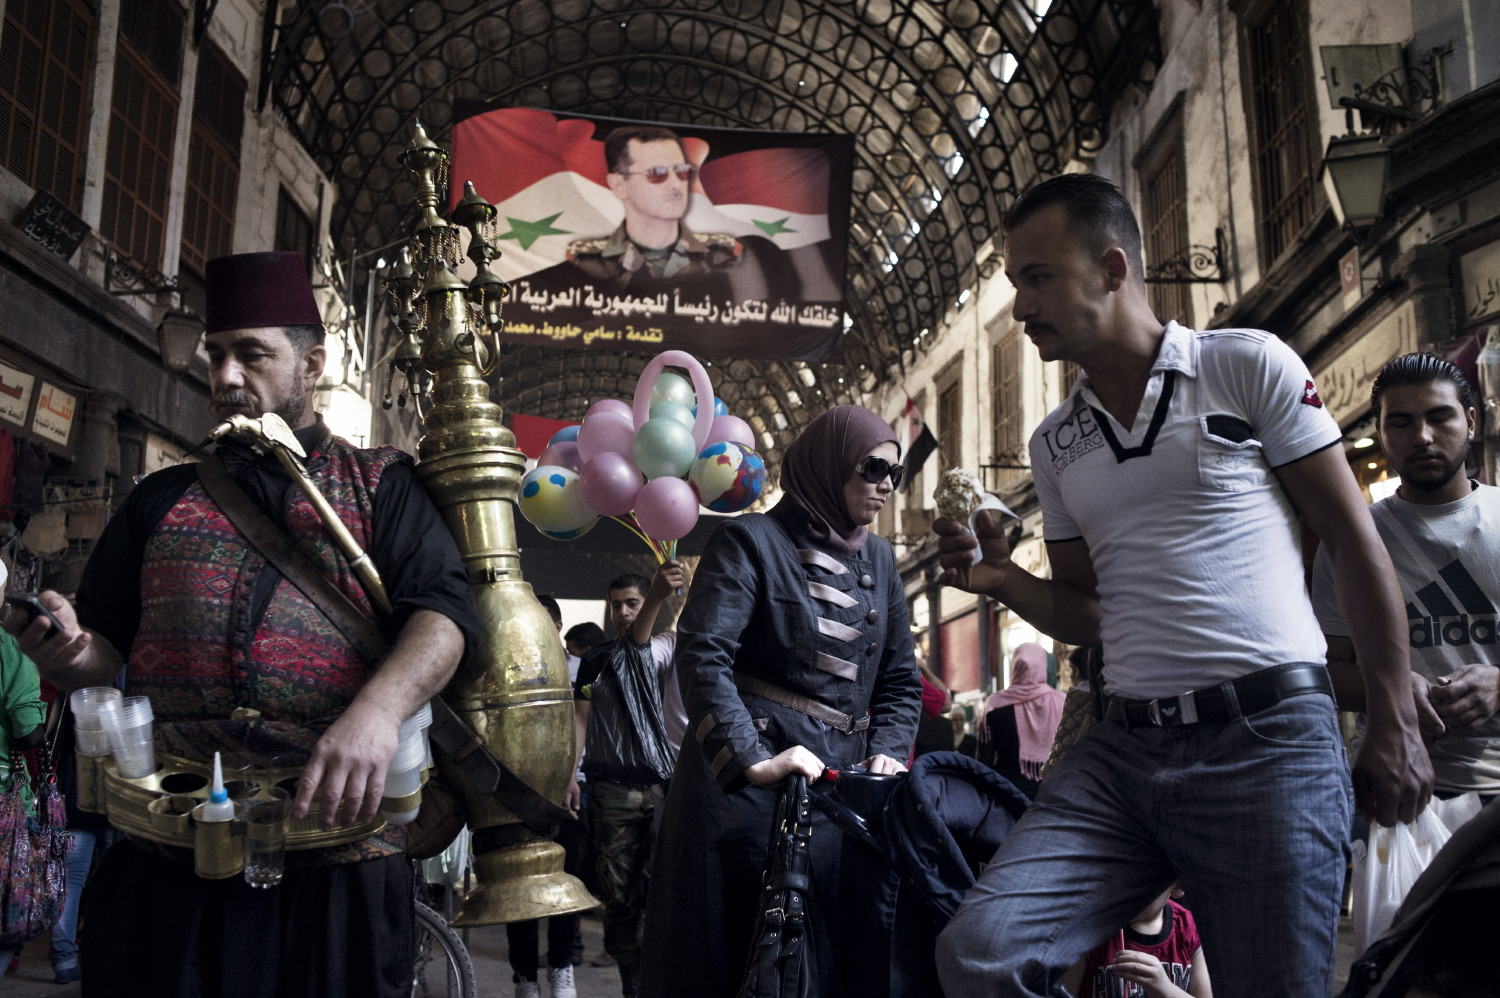 A bustling covered market in Damascus. May 15, 2014.